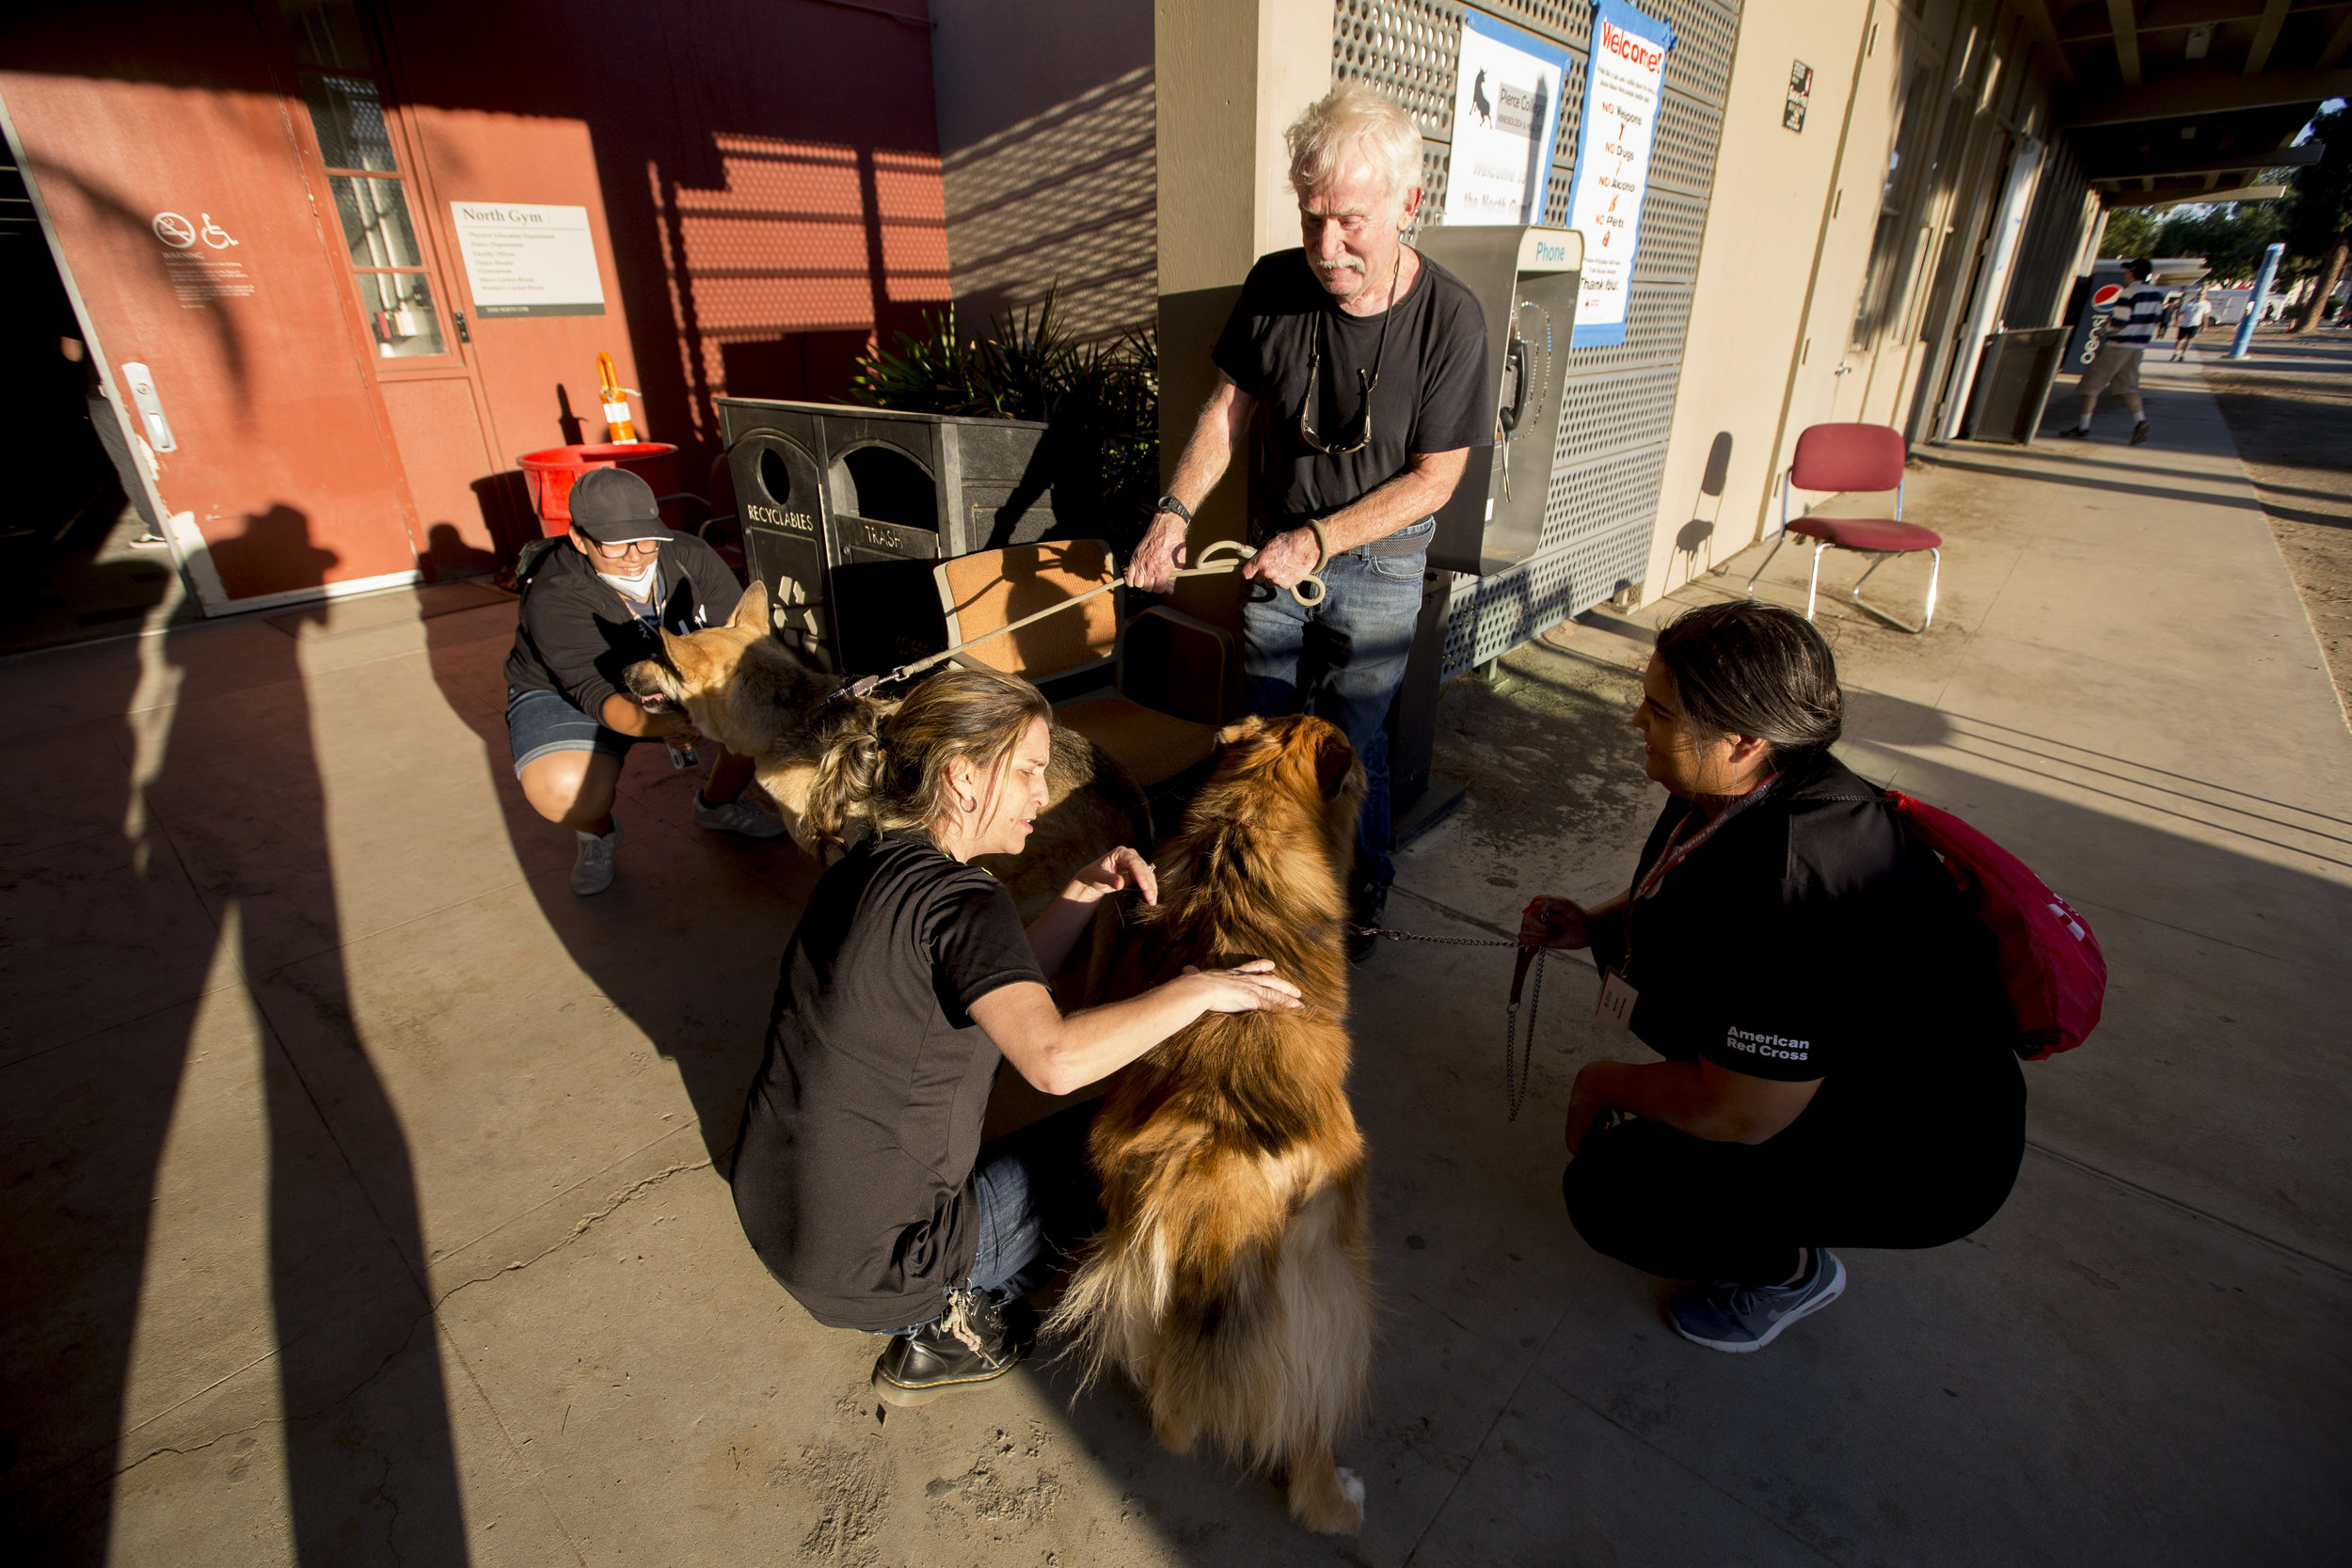 An evacuee arrives with his pets at the Woolsey fire evacuation center set up at Los Angeles Pierce College on November 9, 2018 in Woodland Hills, Calif. (Jose Lopez)